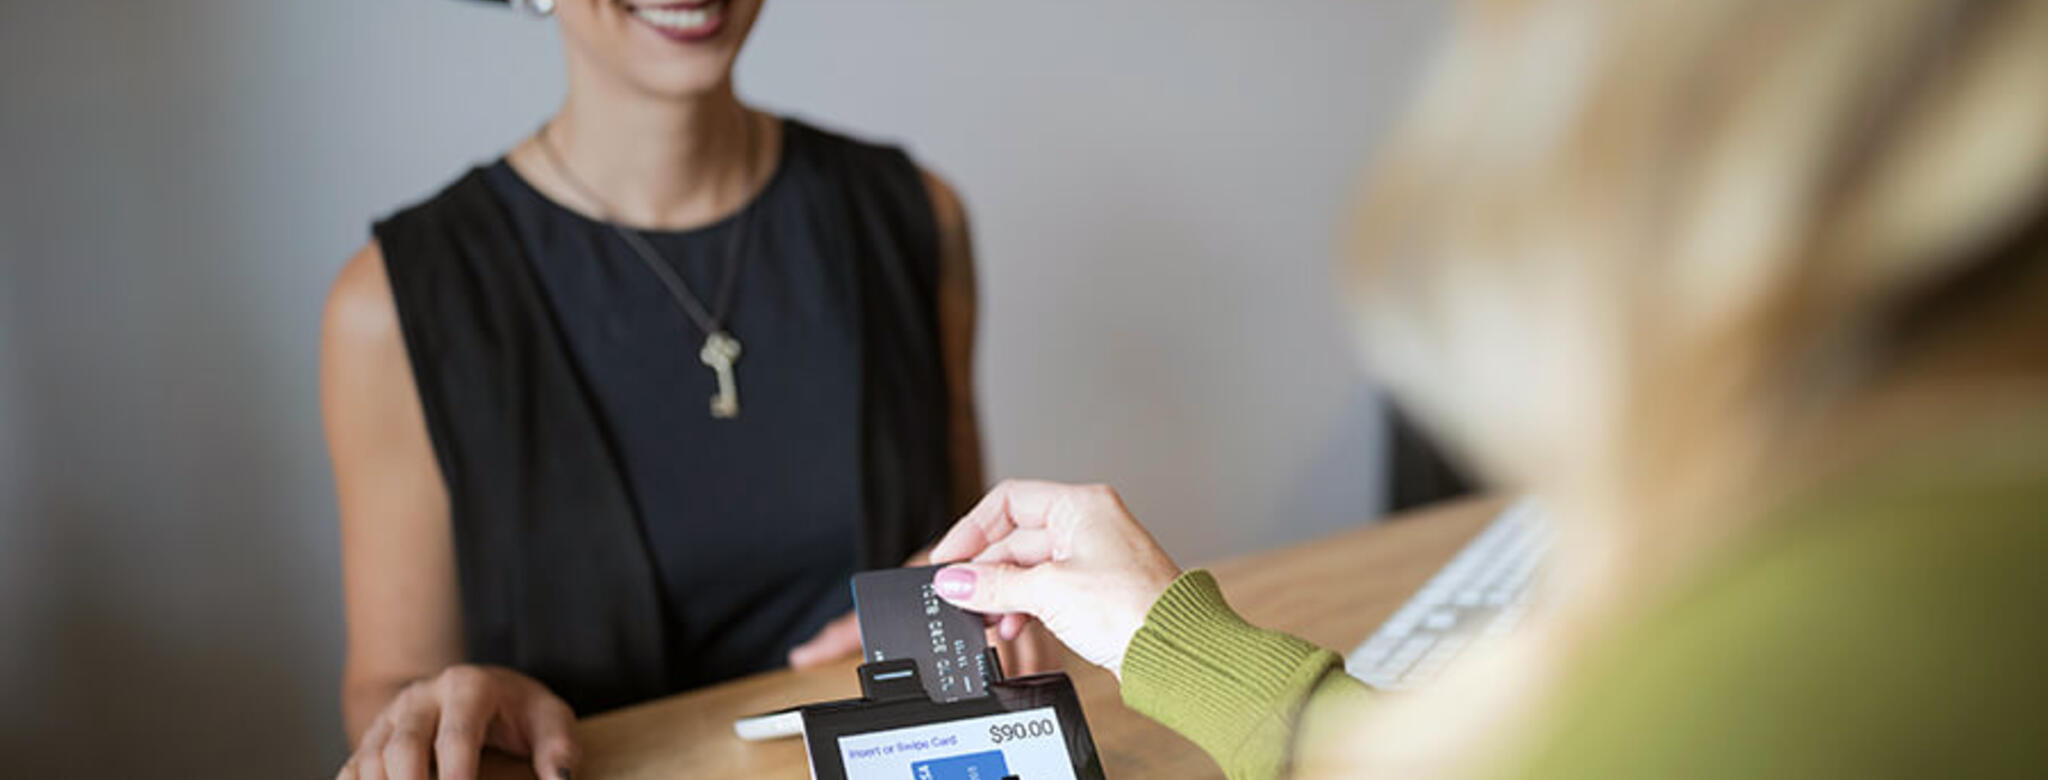 Woman processing payment through Poynt